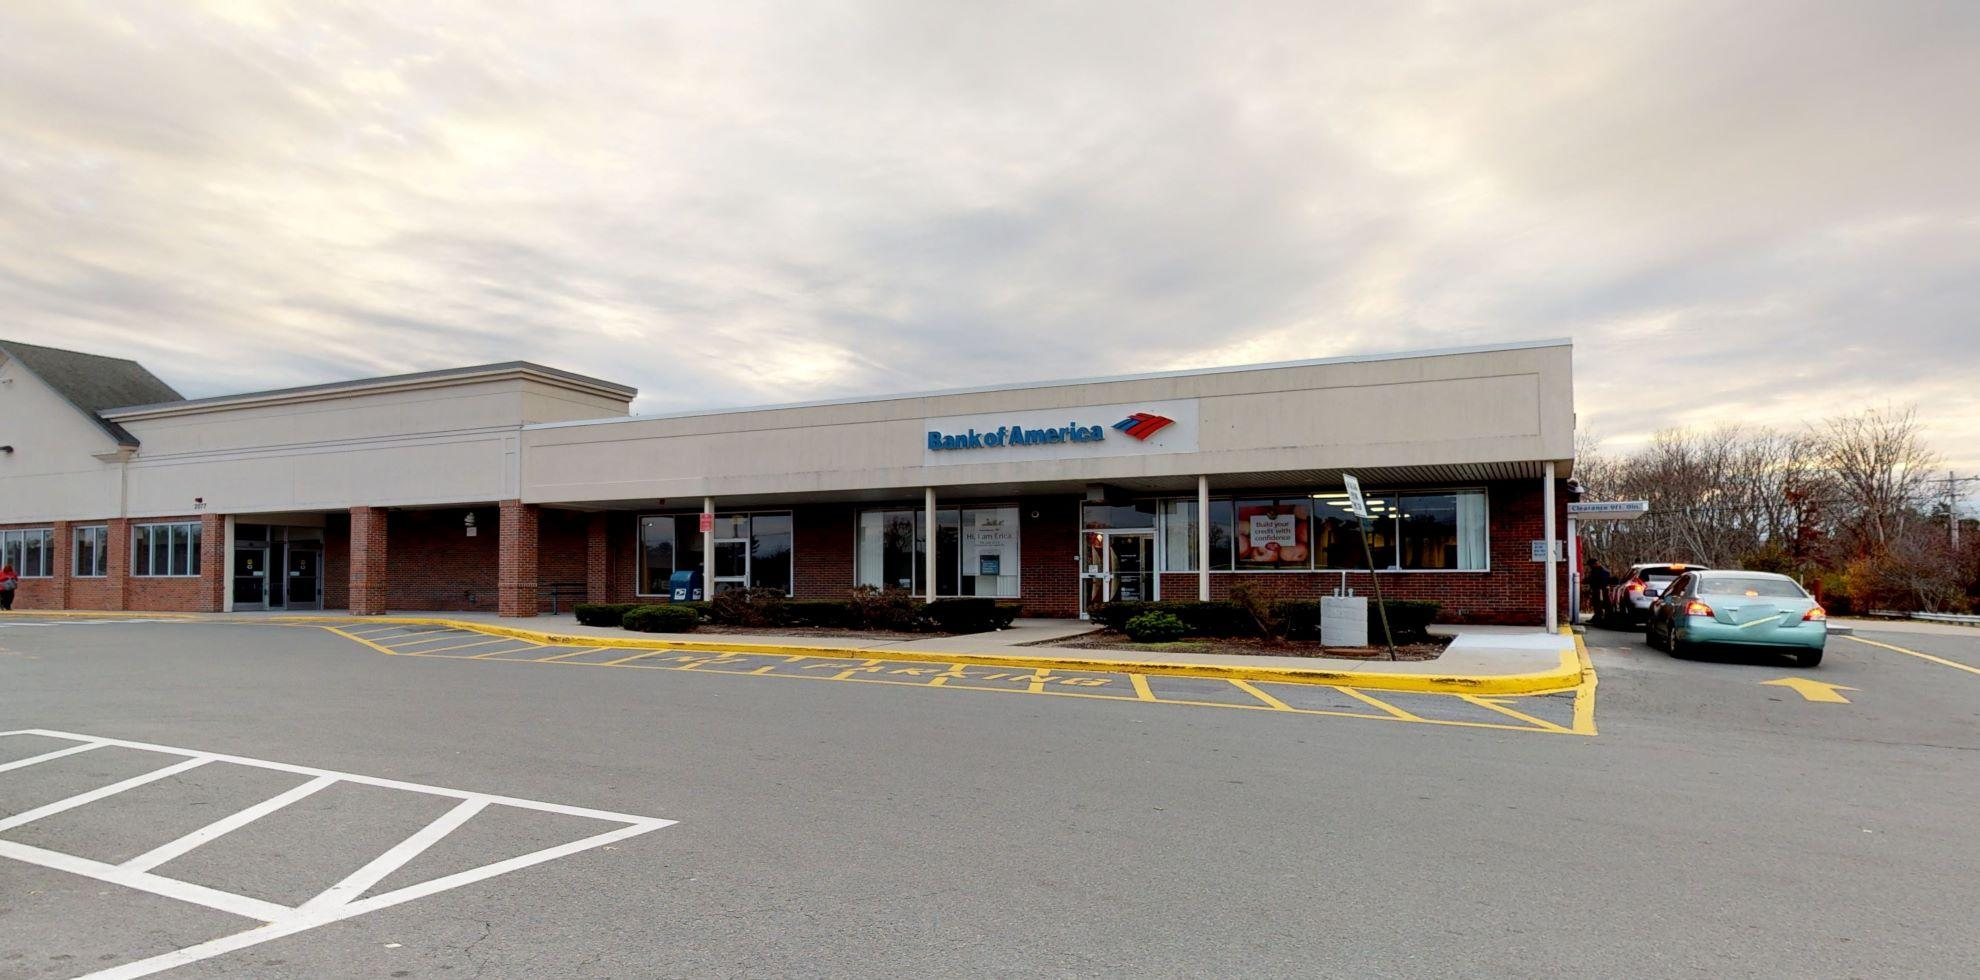 Bank of America financial center with drive-thru ATM | 2071 Main St, Brockton, MA 02301